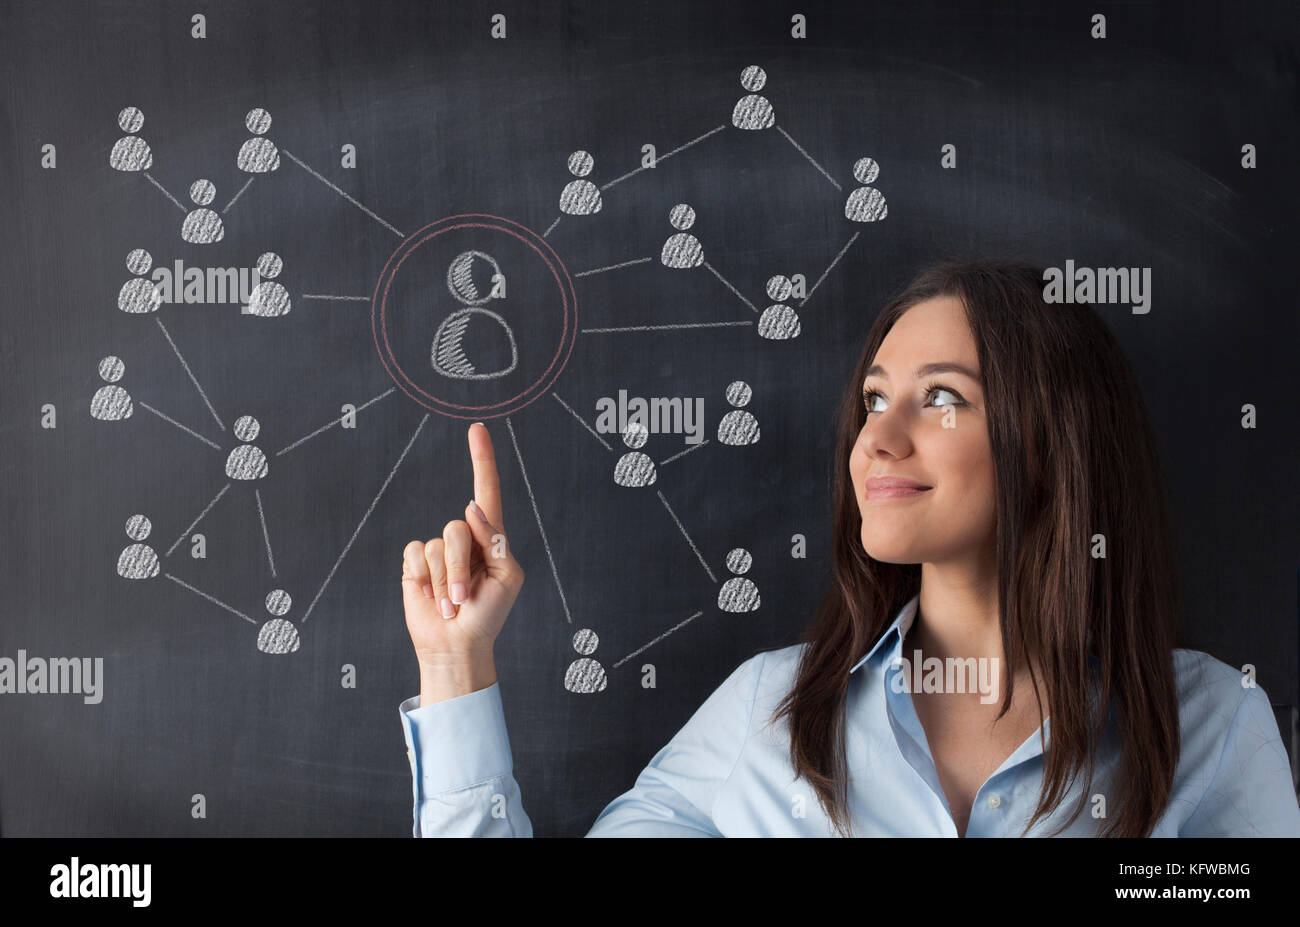 Businesswoman standing against social network chalk drawing on blackboard and pointing on it - Stock Image